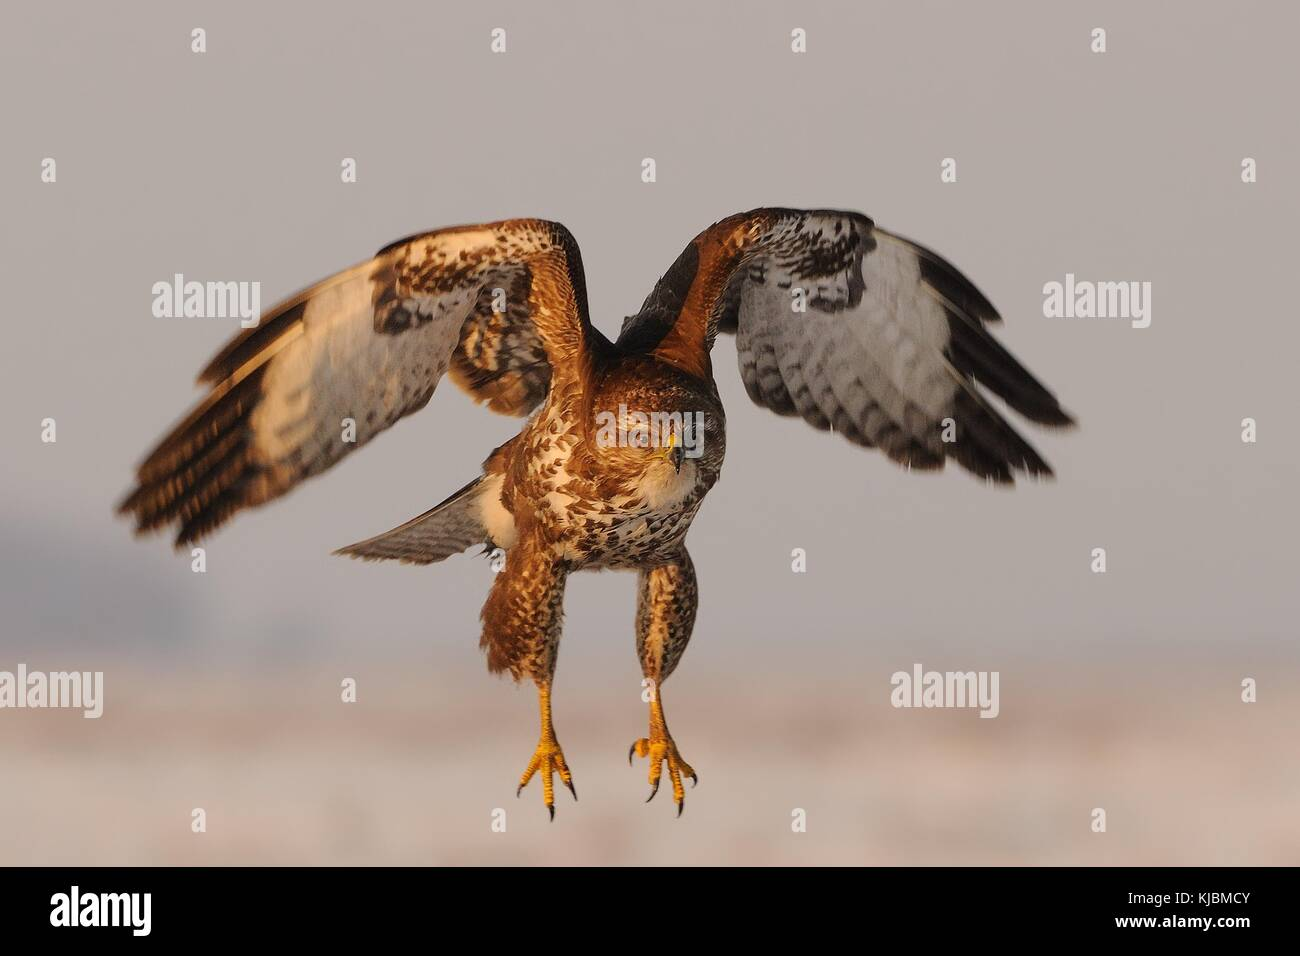 Common Buzzard - Buteo buteo flying over the snow-covered lanscape. - Stock Image